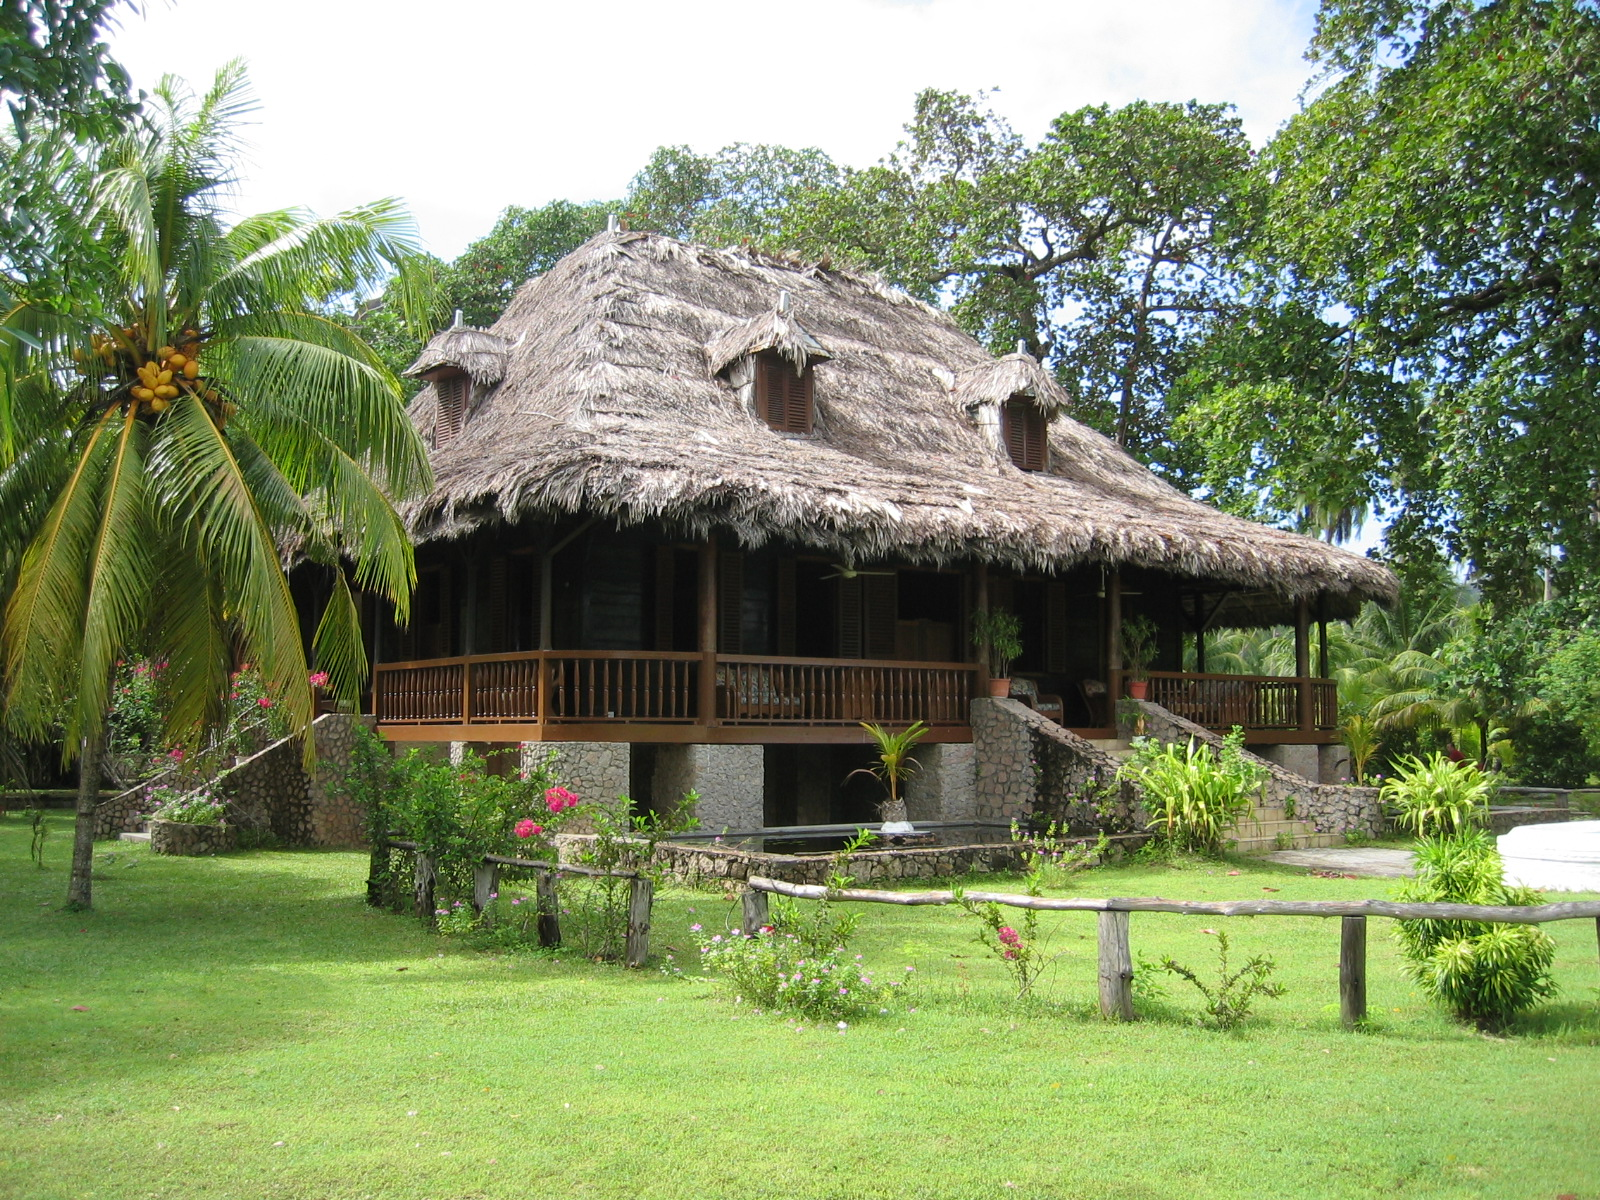 The La Digue Plantation house | ©tiarescott/flickr